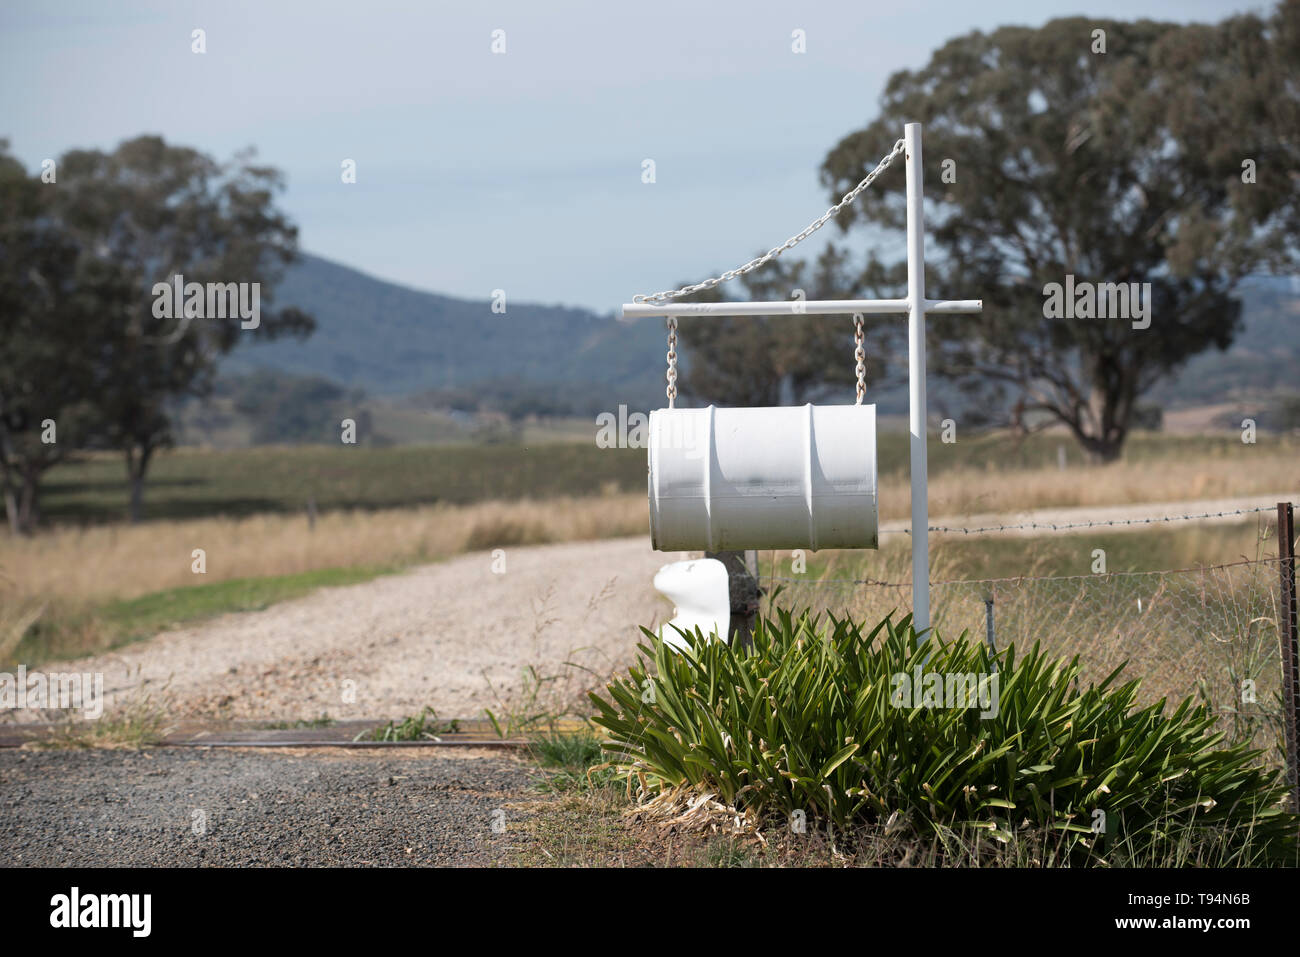 An Old Oil Drum Is Converted Into A Large Letterbox At The Entrance To A Rural Property In North Western New South Wales Australia Stock Photo Alamy